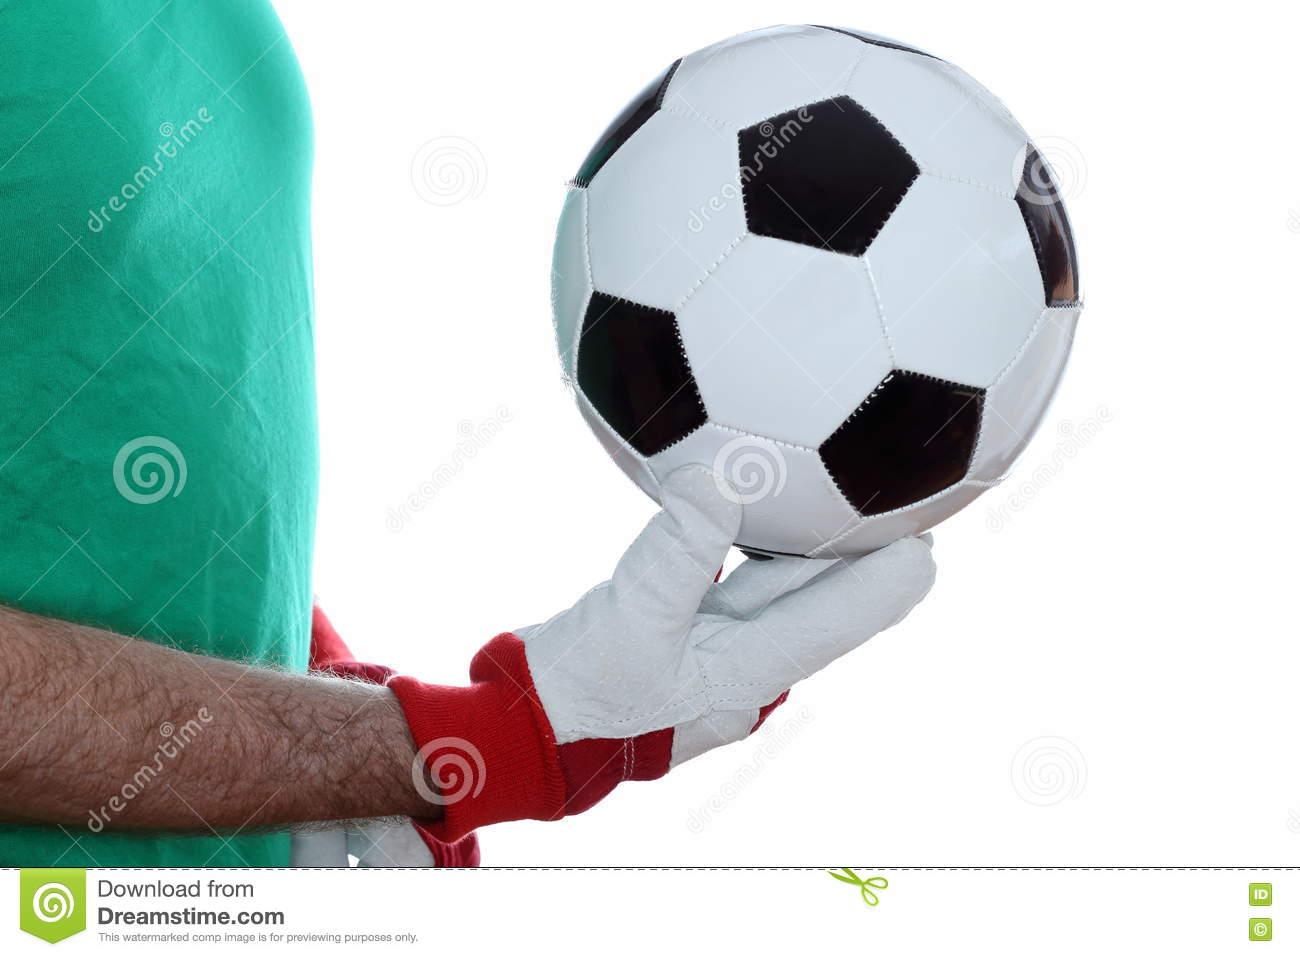 Goal keeper with gloves